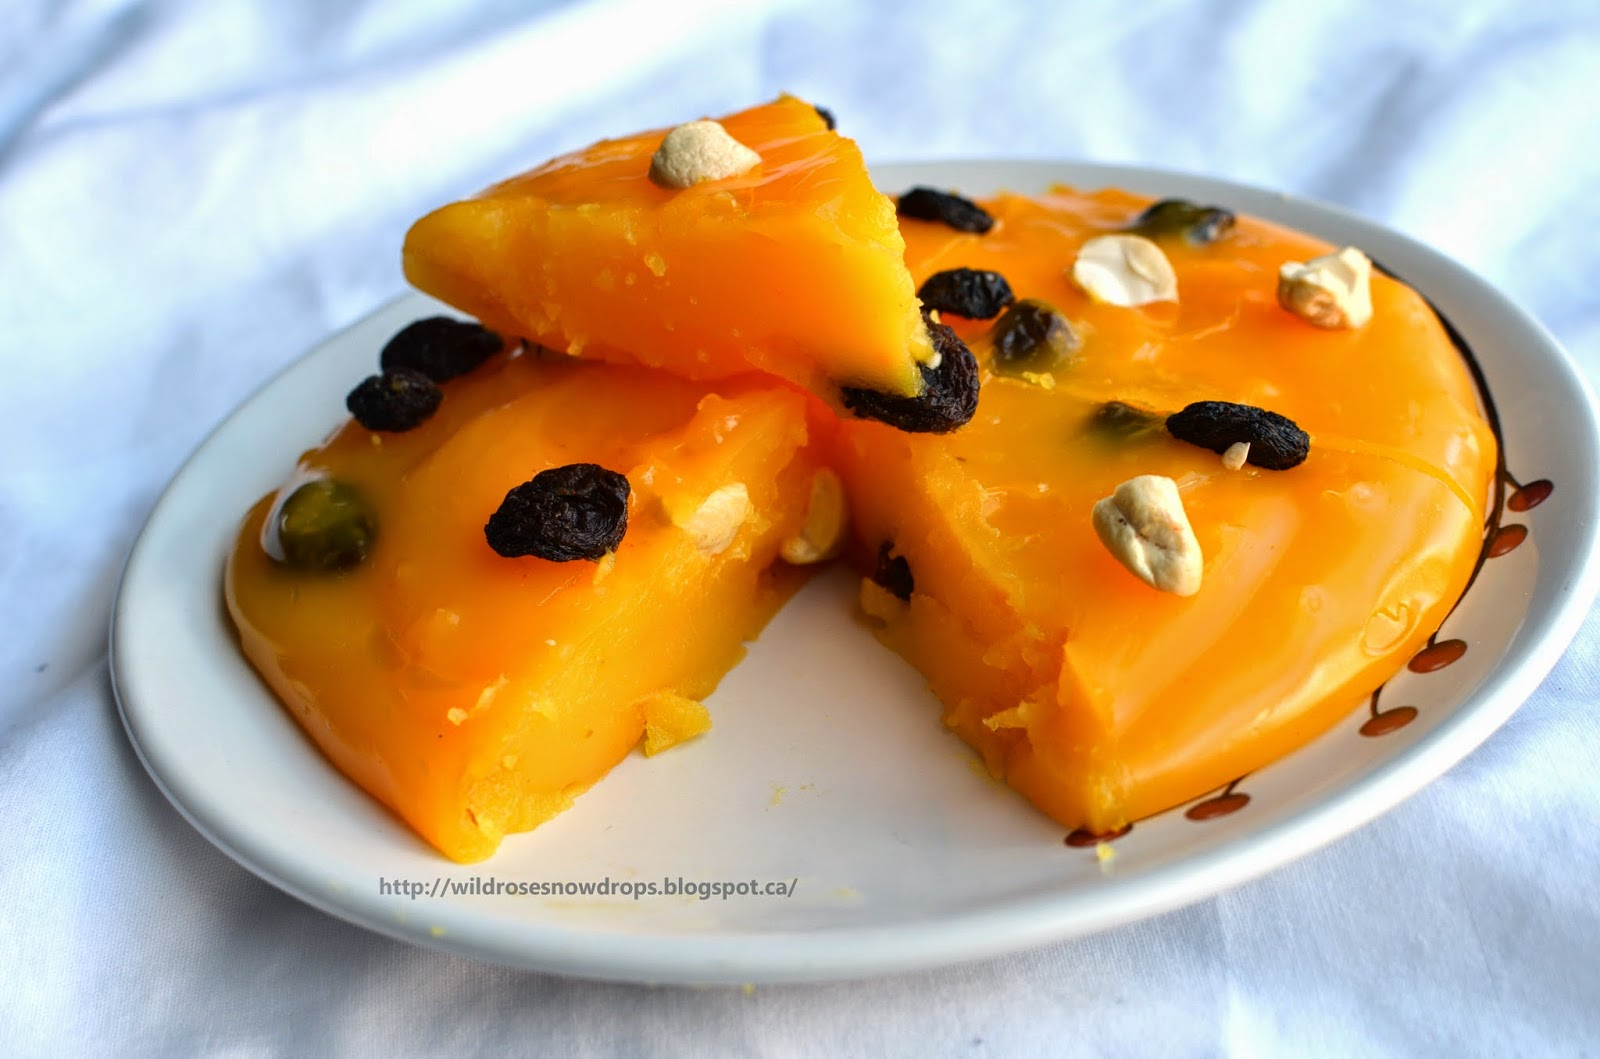 Pudding recipes pudding recipes sinhala pudding recipes sinhala pictures forumfinder Choice Image